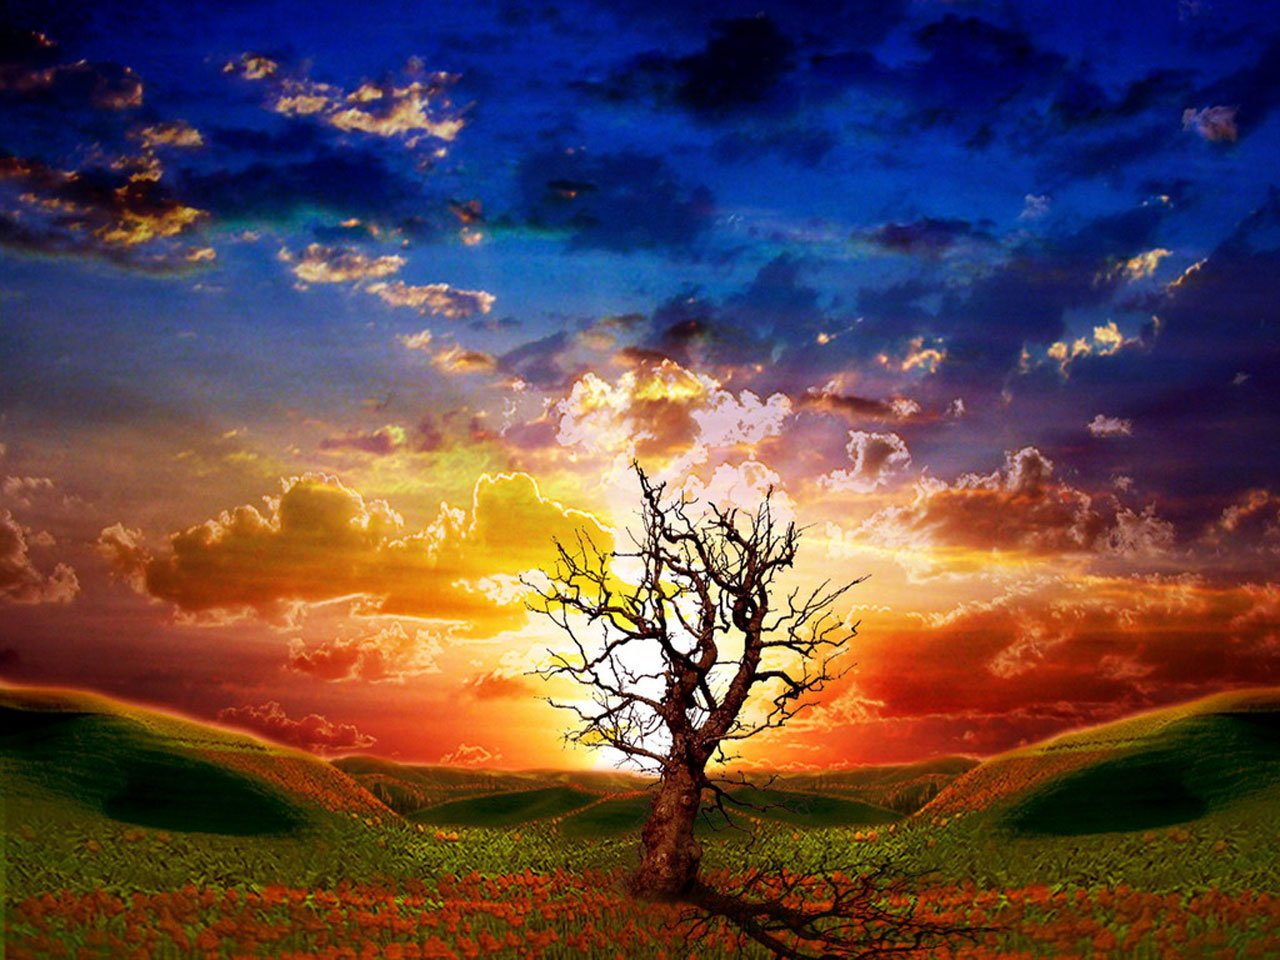 Online Wallpapers Shop Animated Wallpapers Animated Pictures 1280x960